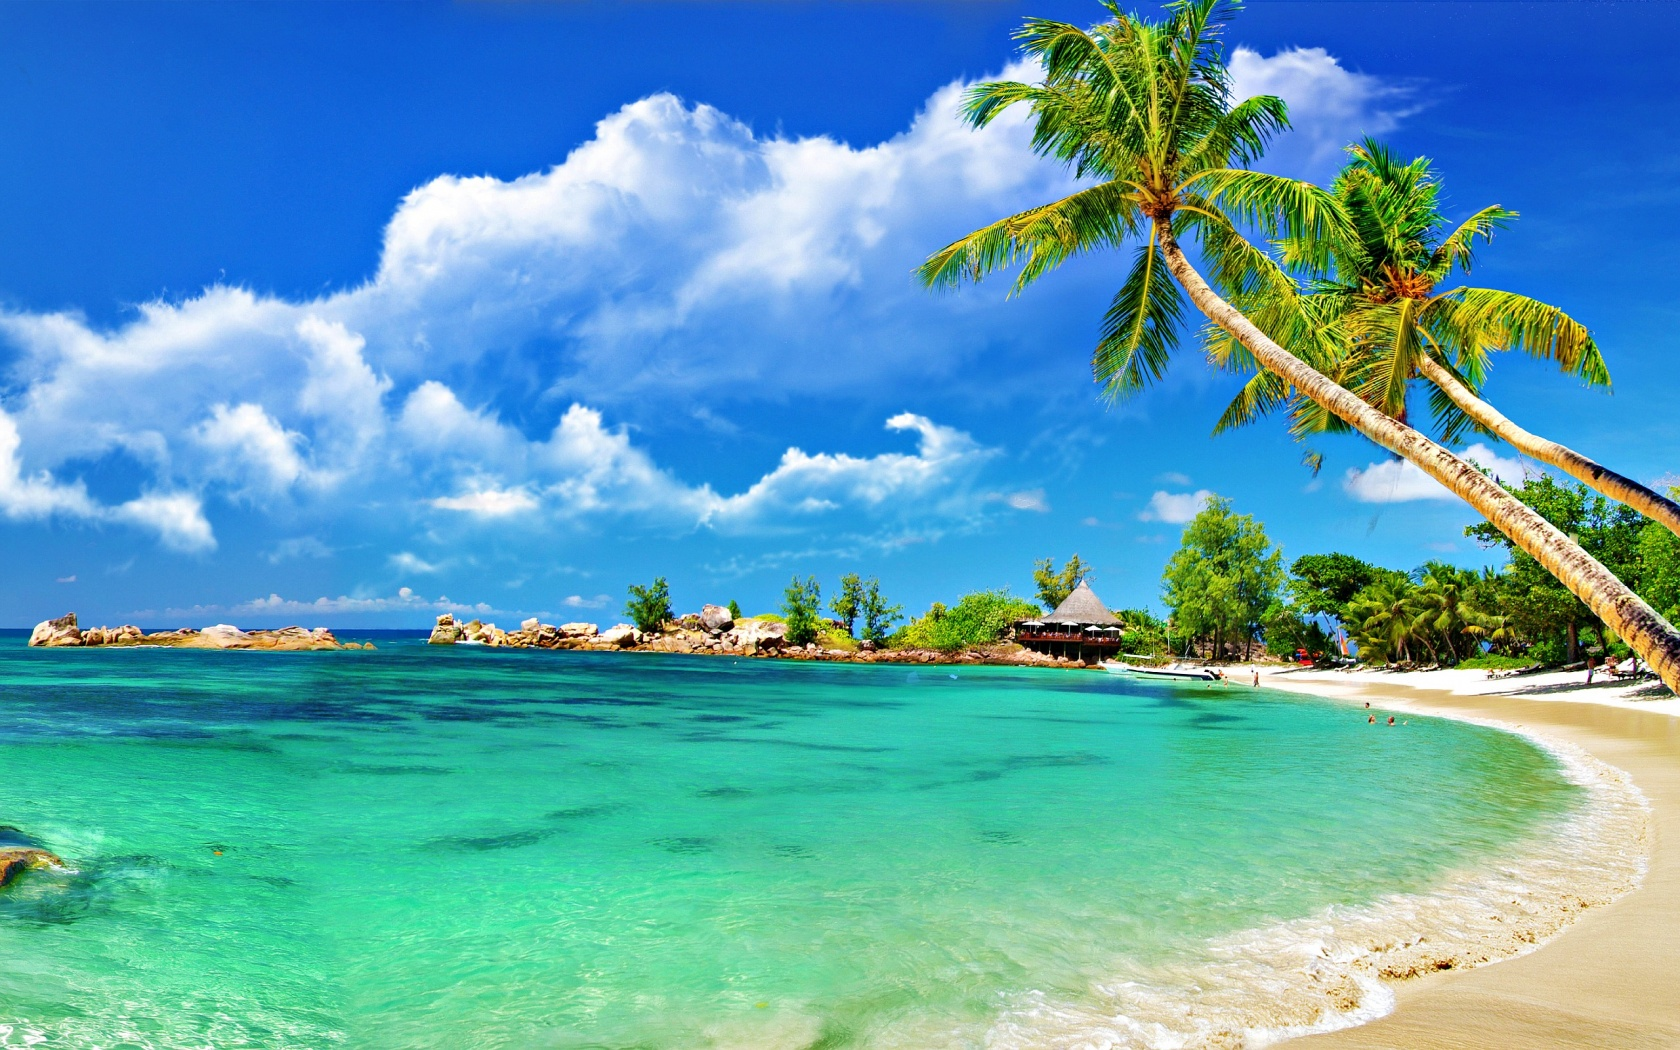 Wallpaper for Home wallpaper Beach Wallpaper for Home hd wallpaper 1680x1050